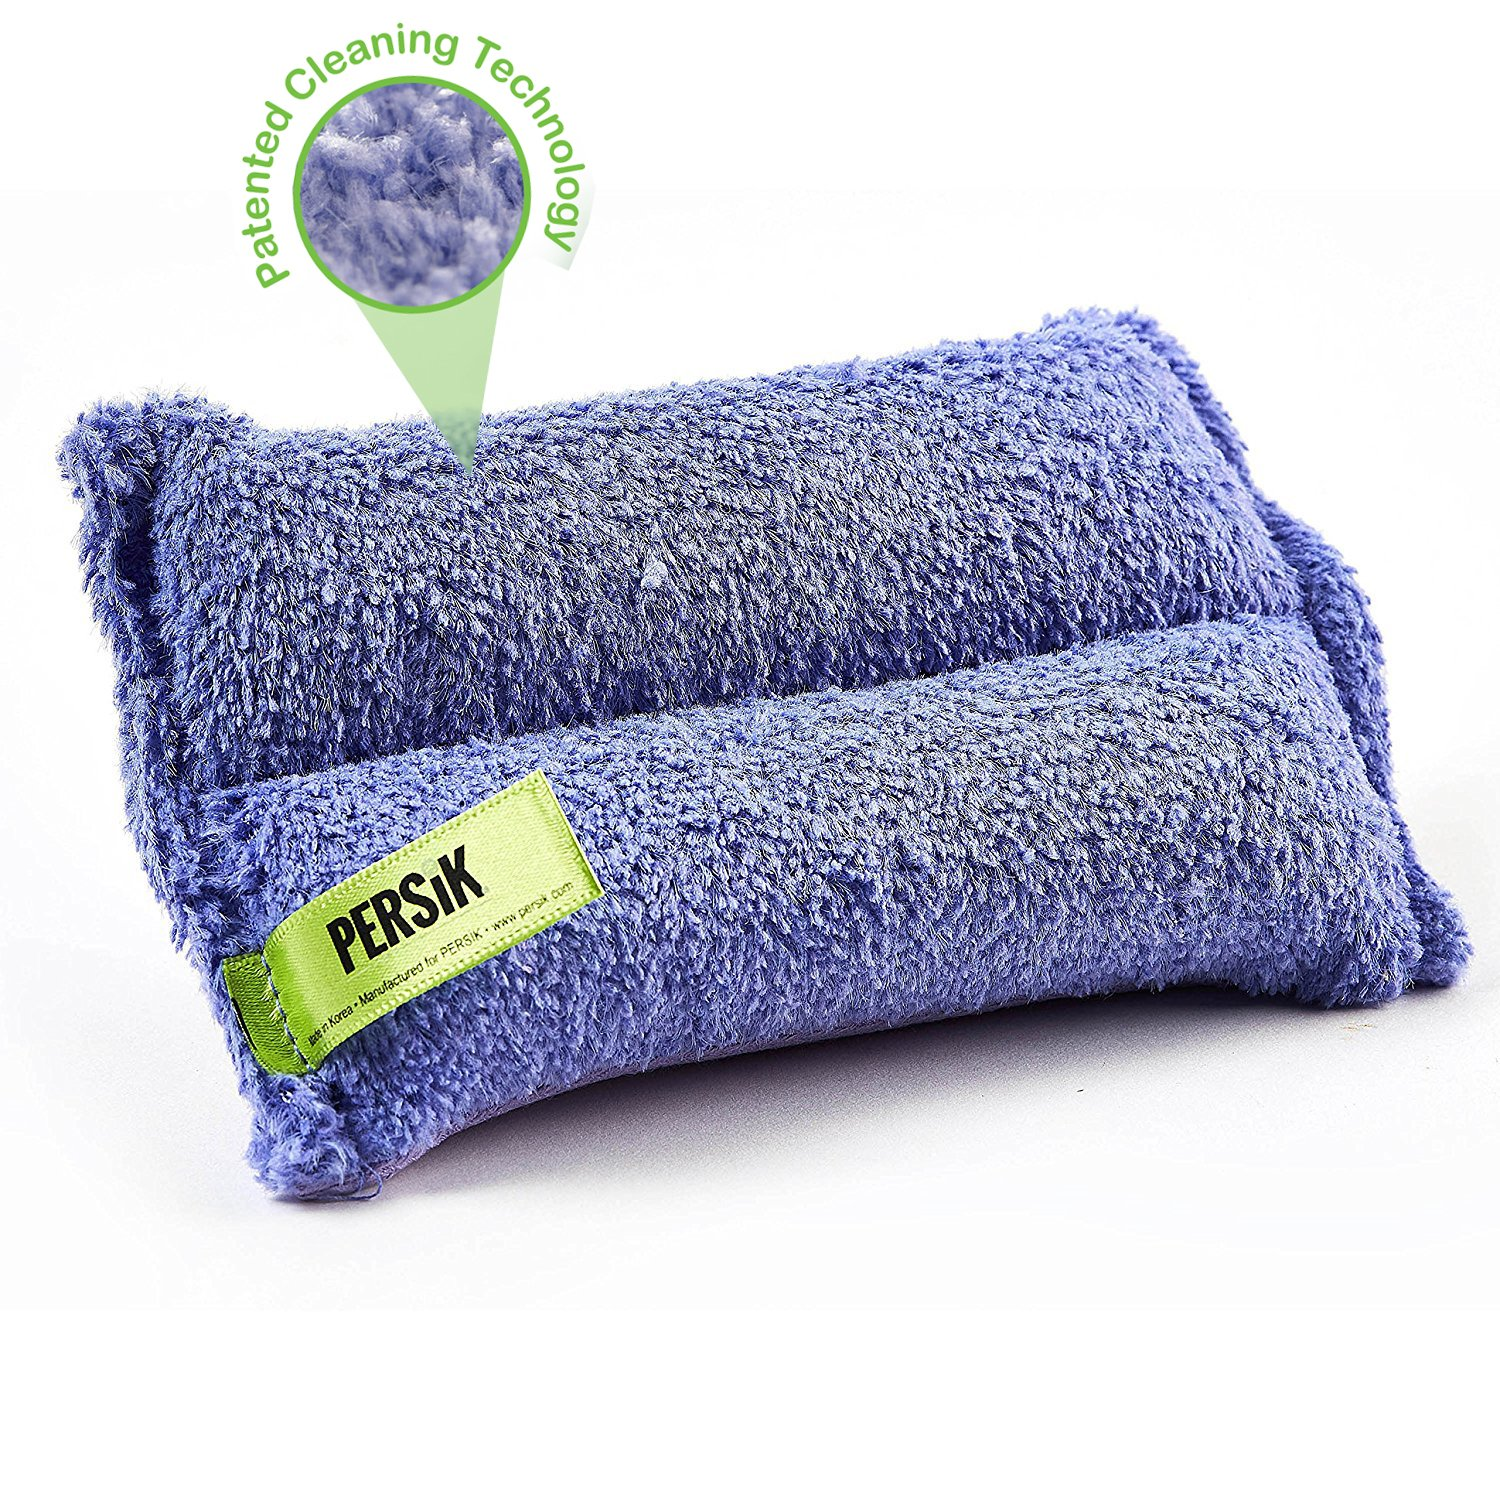 Nano-Knockout ULTRA-MICROFIBER Cleaning SPONGE – Kitchen, Household and Dish Sponges – JUST ADD WATER No Detergents Needed – Heavy Duty for Removing Stains in the Cracks, Window Frame, Tubs, Sinks